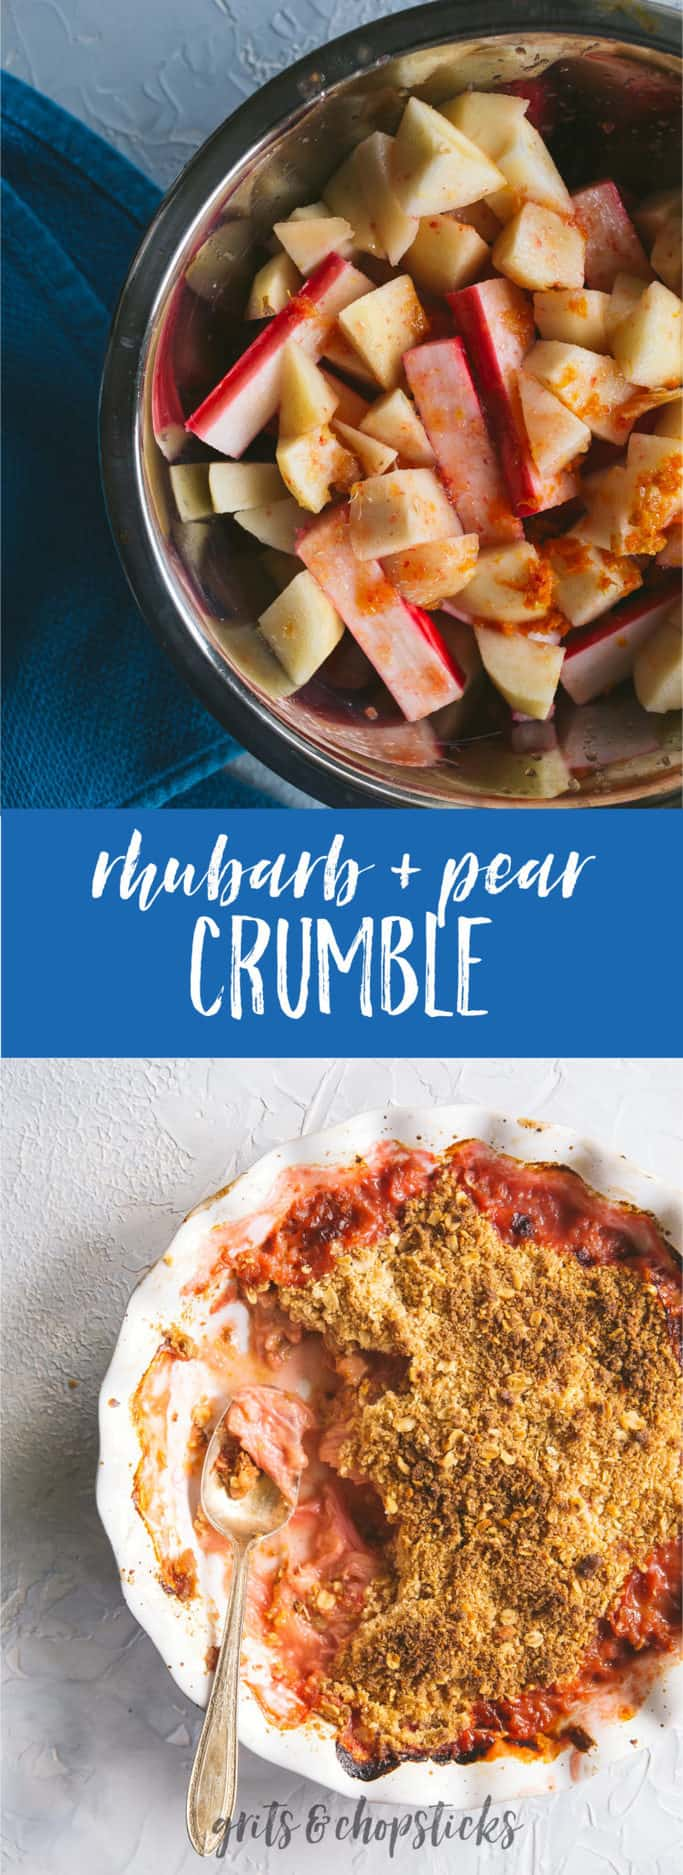 This amazing rhubarb and pear crumble is a great option for a winter dessert; click here for the recipe!